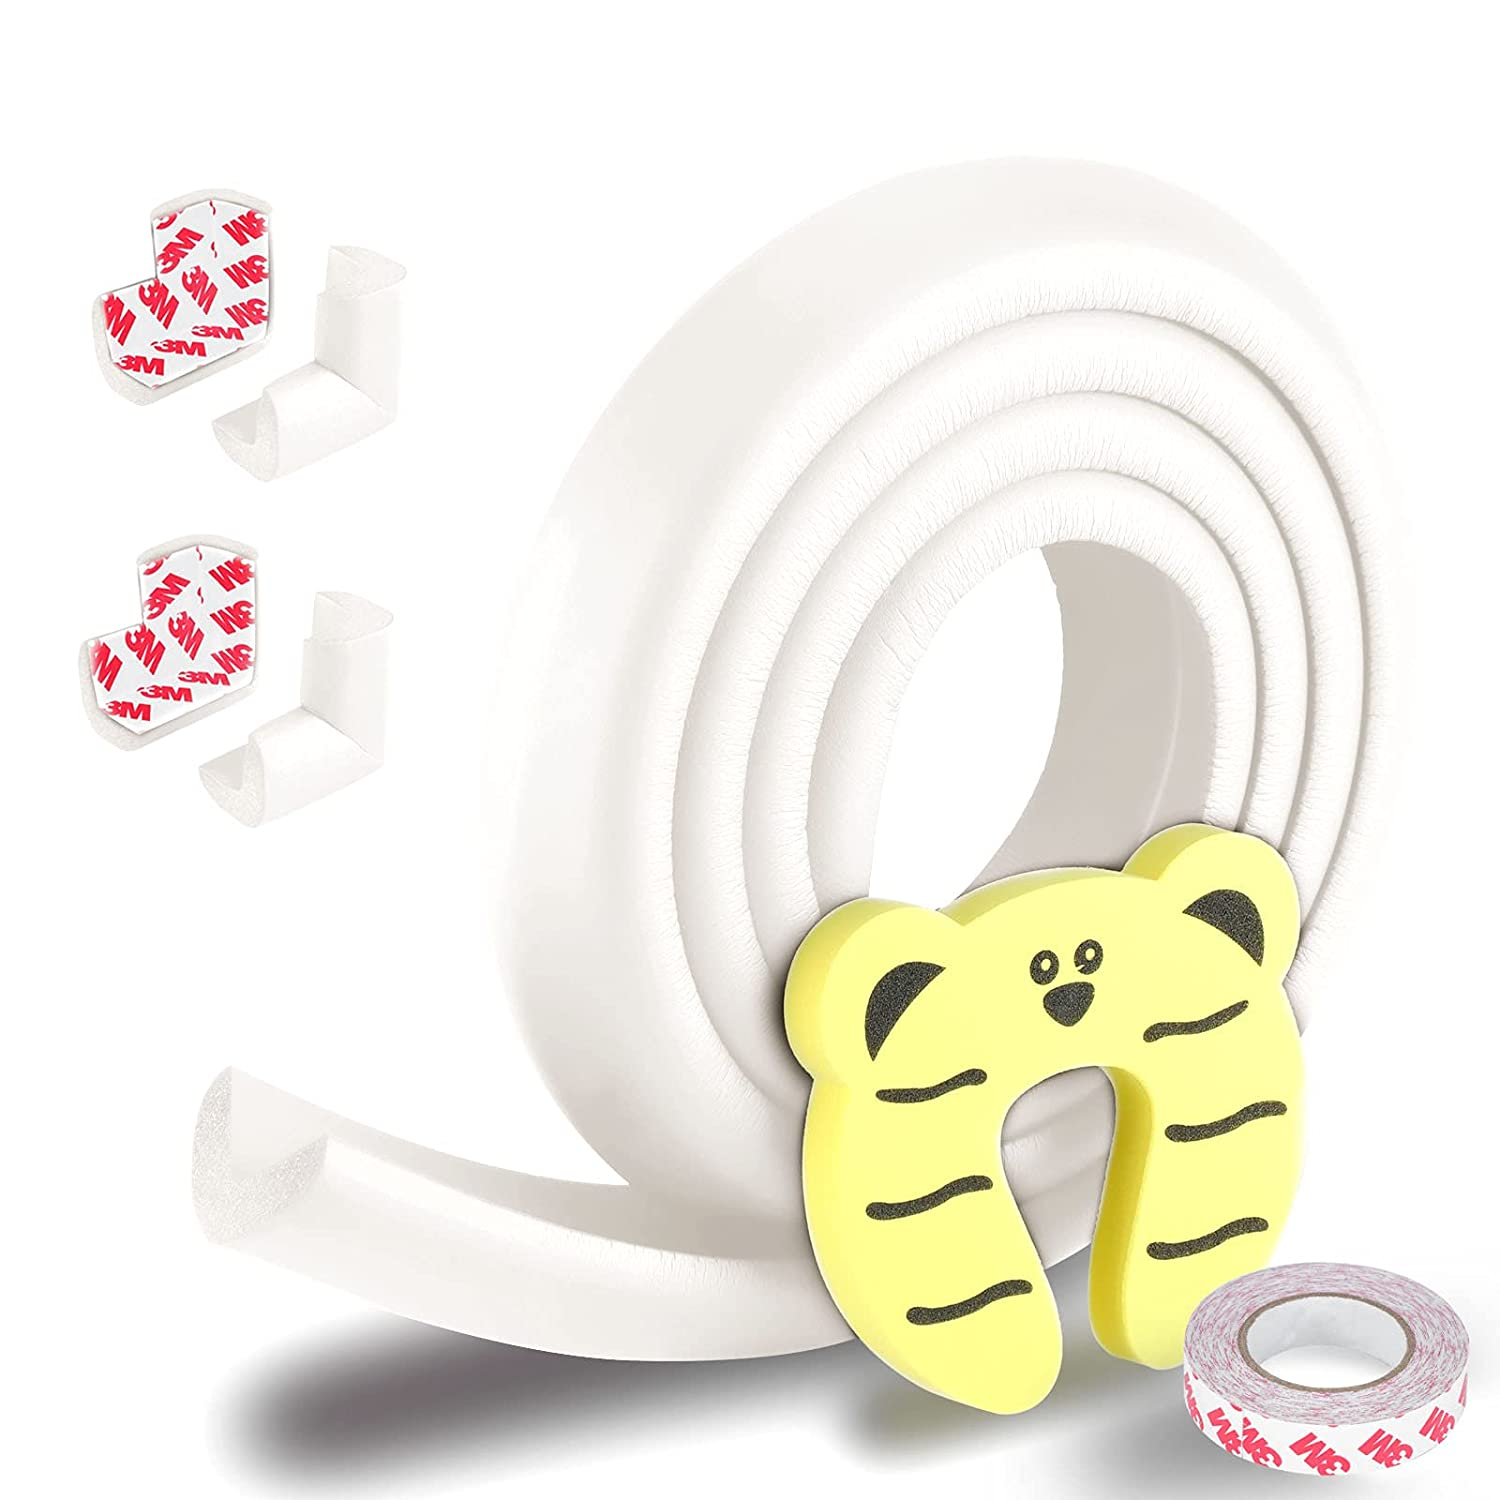 Ricbestlab Baby Proofing Edge and 3M Fixed price for sale Pre-T Animer and price revision Safety Corner Guards